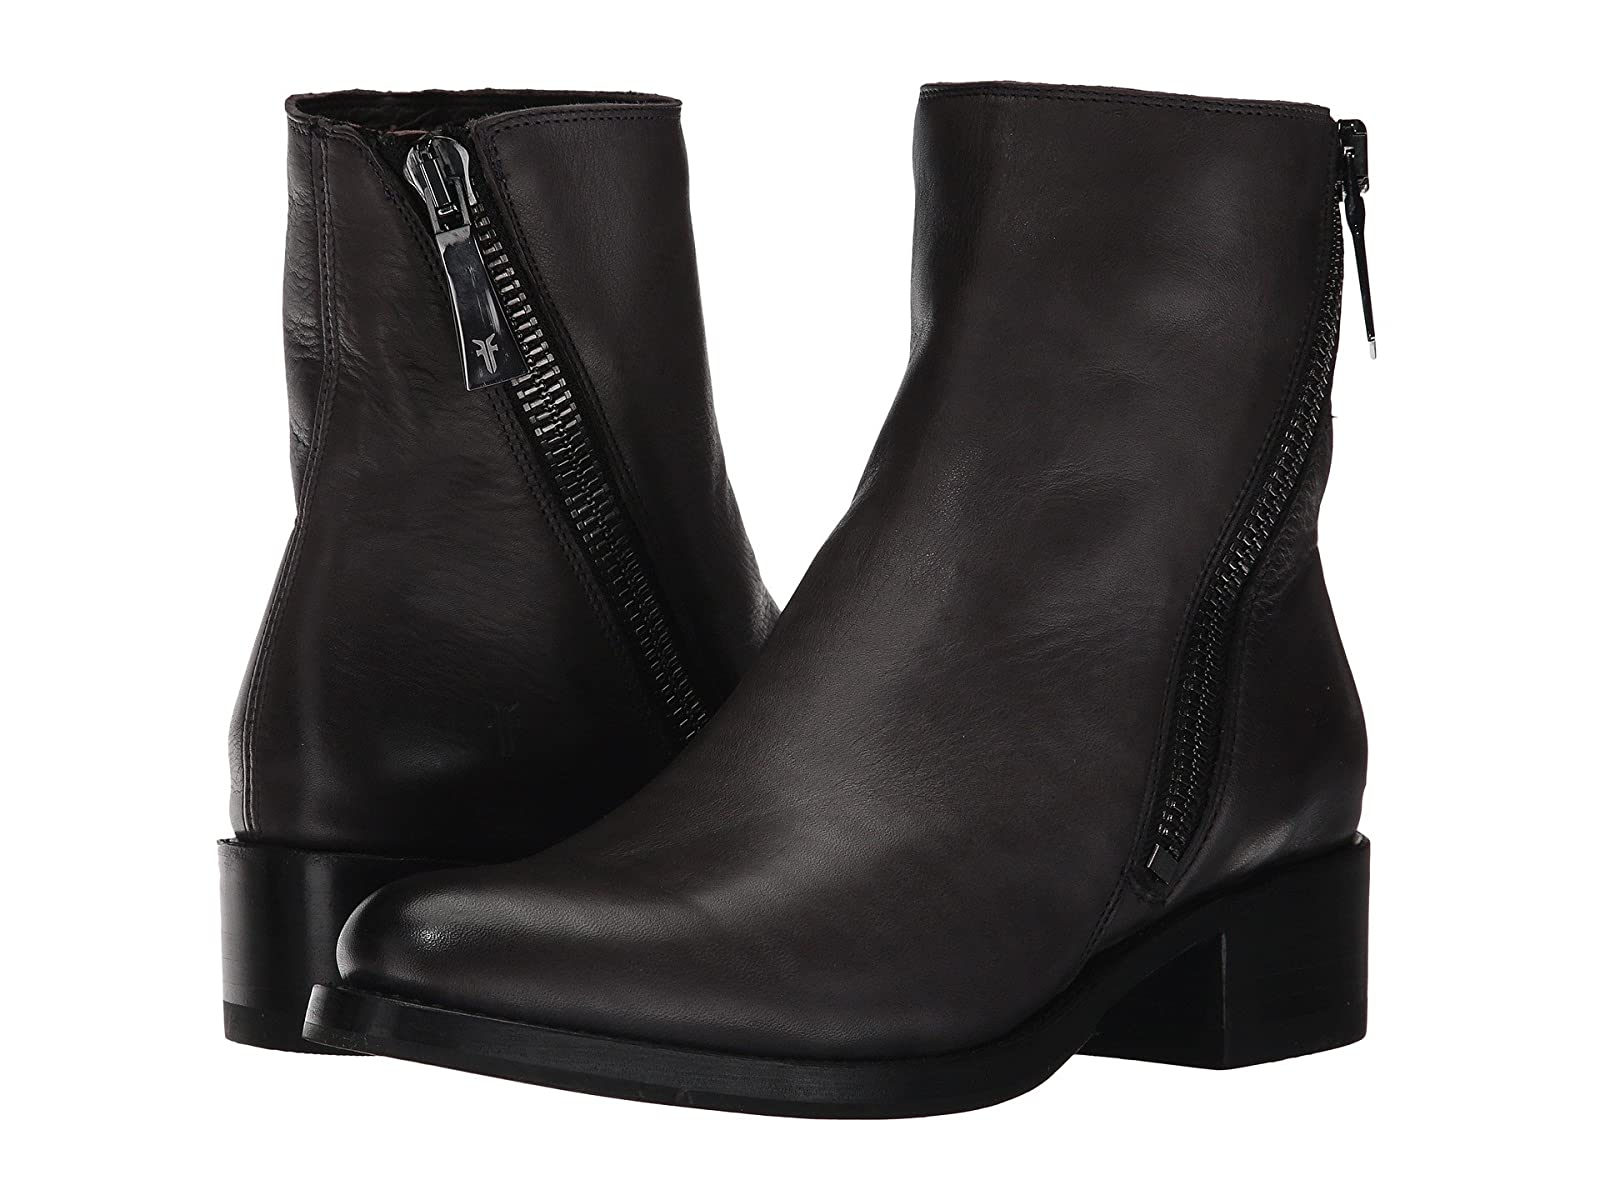 Frye Demi Zip BootieCheap and distinctive eye-catching shoes